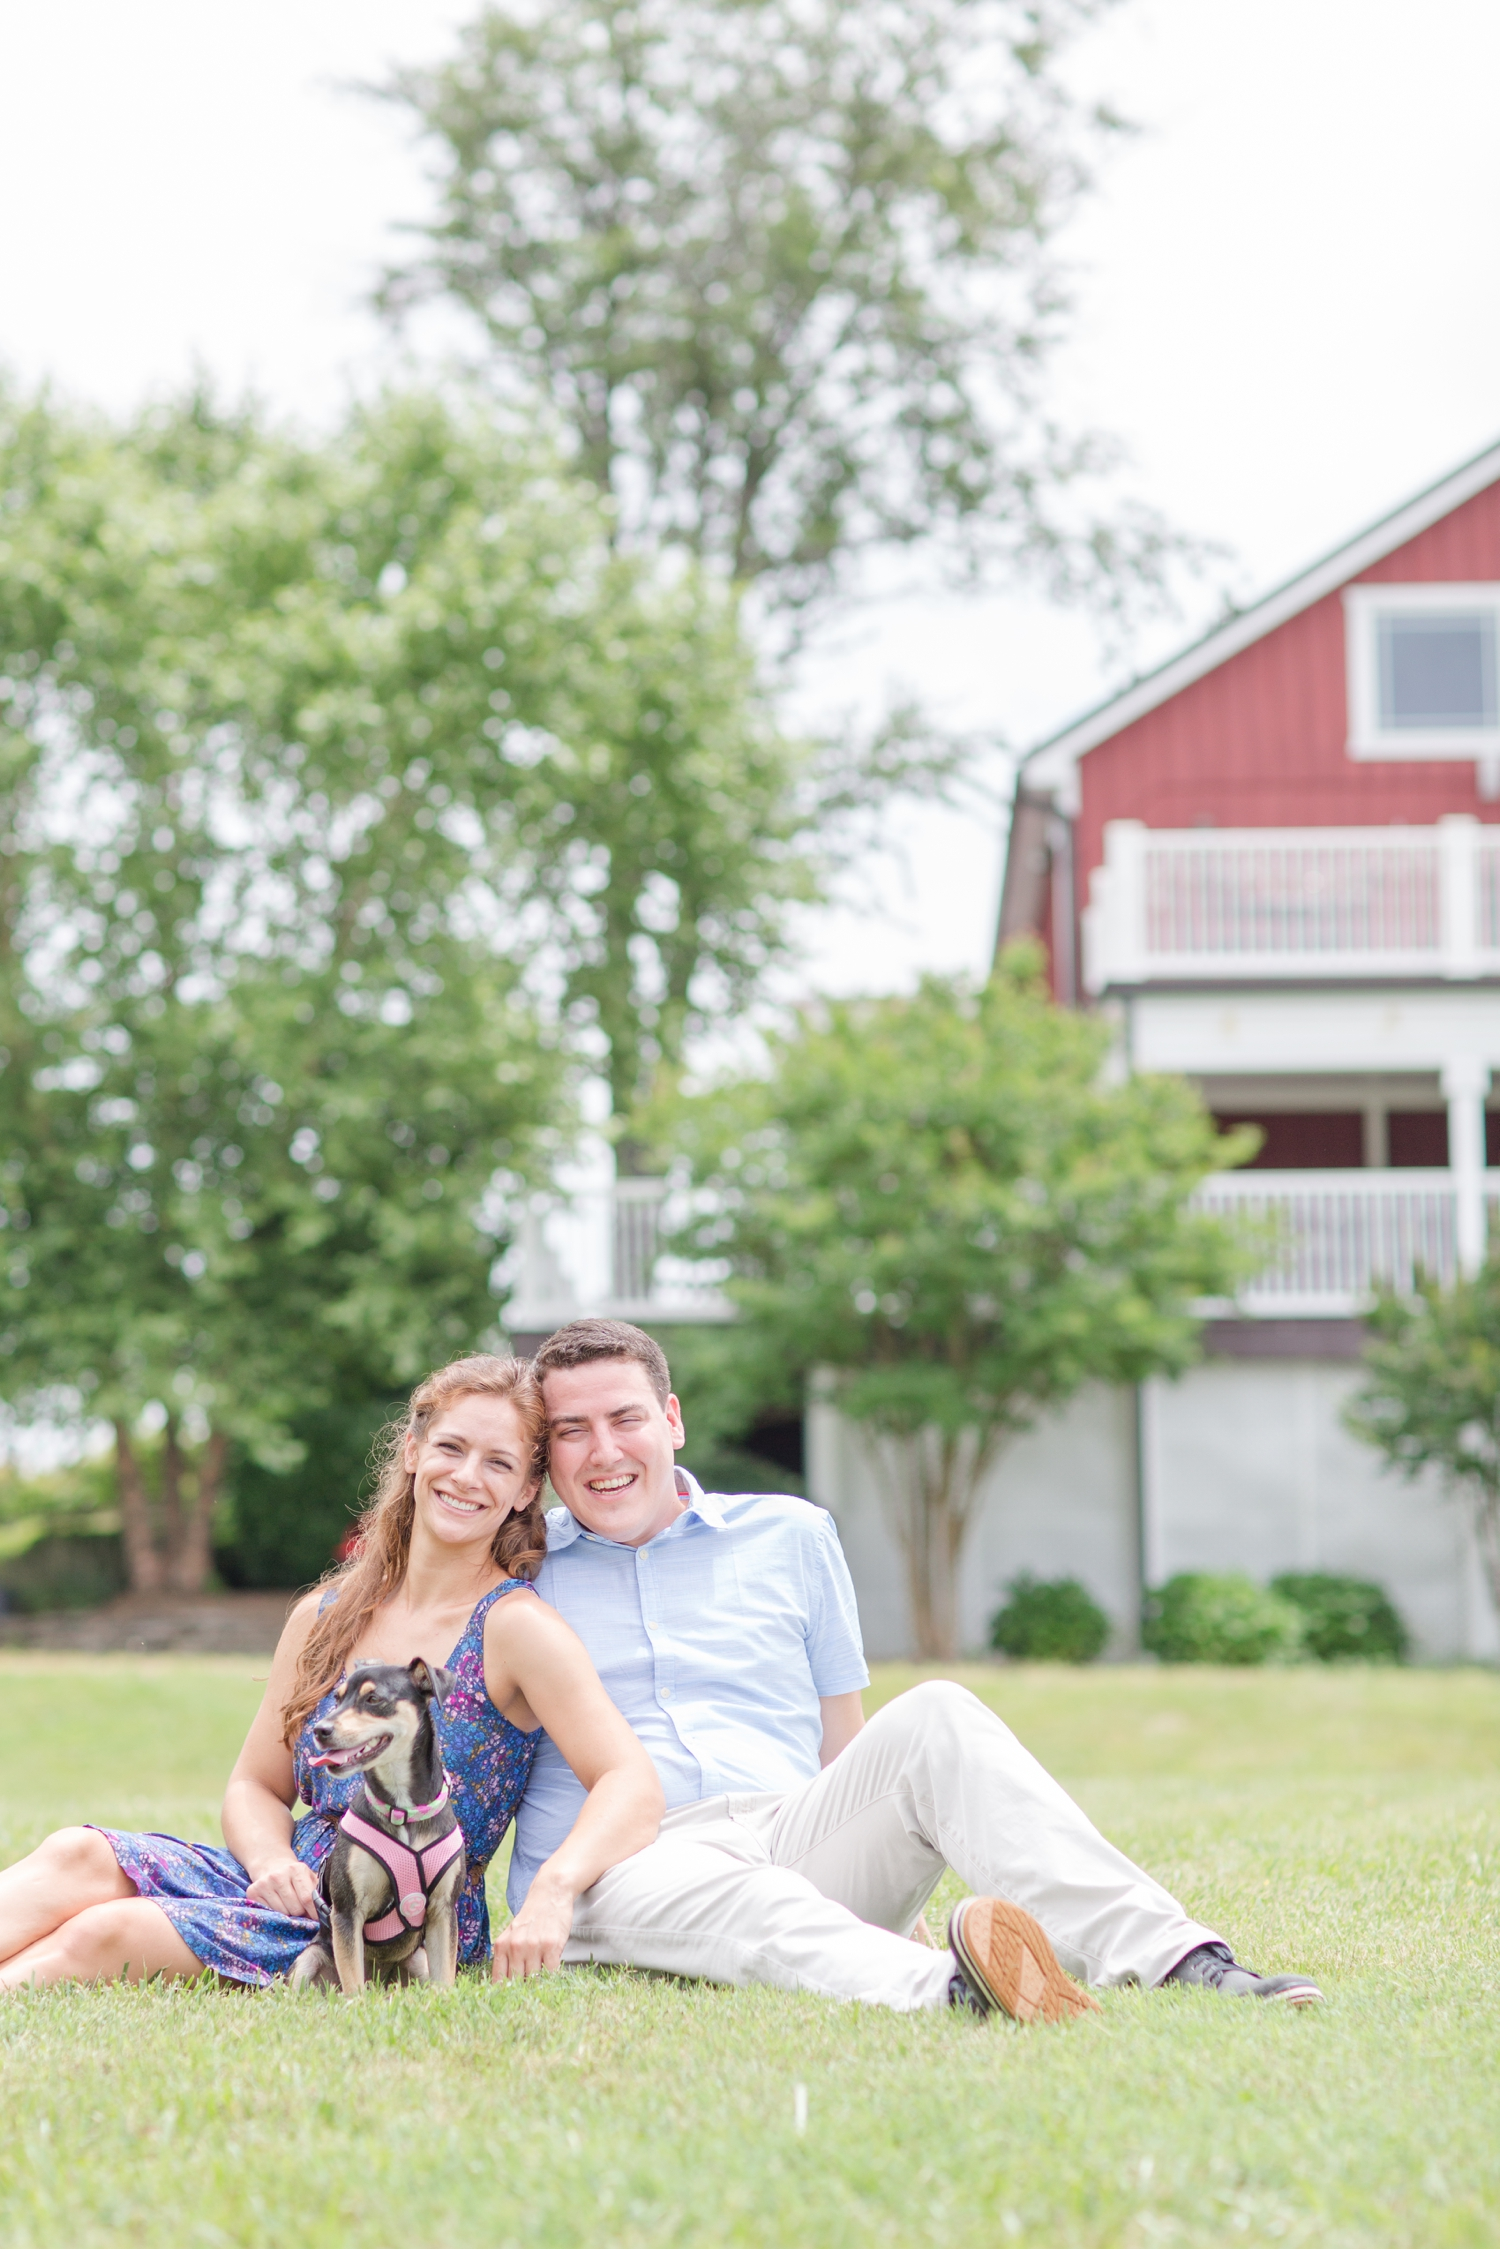 Colin & Kelsey Engagement-244_anna grace photography sunset hills vineyard engagement photography virginia wedding and engagement photographer photo.jpg